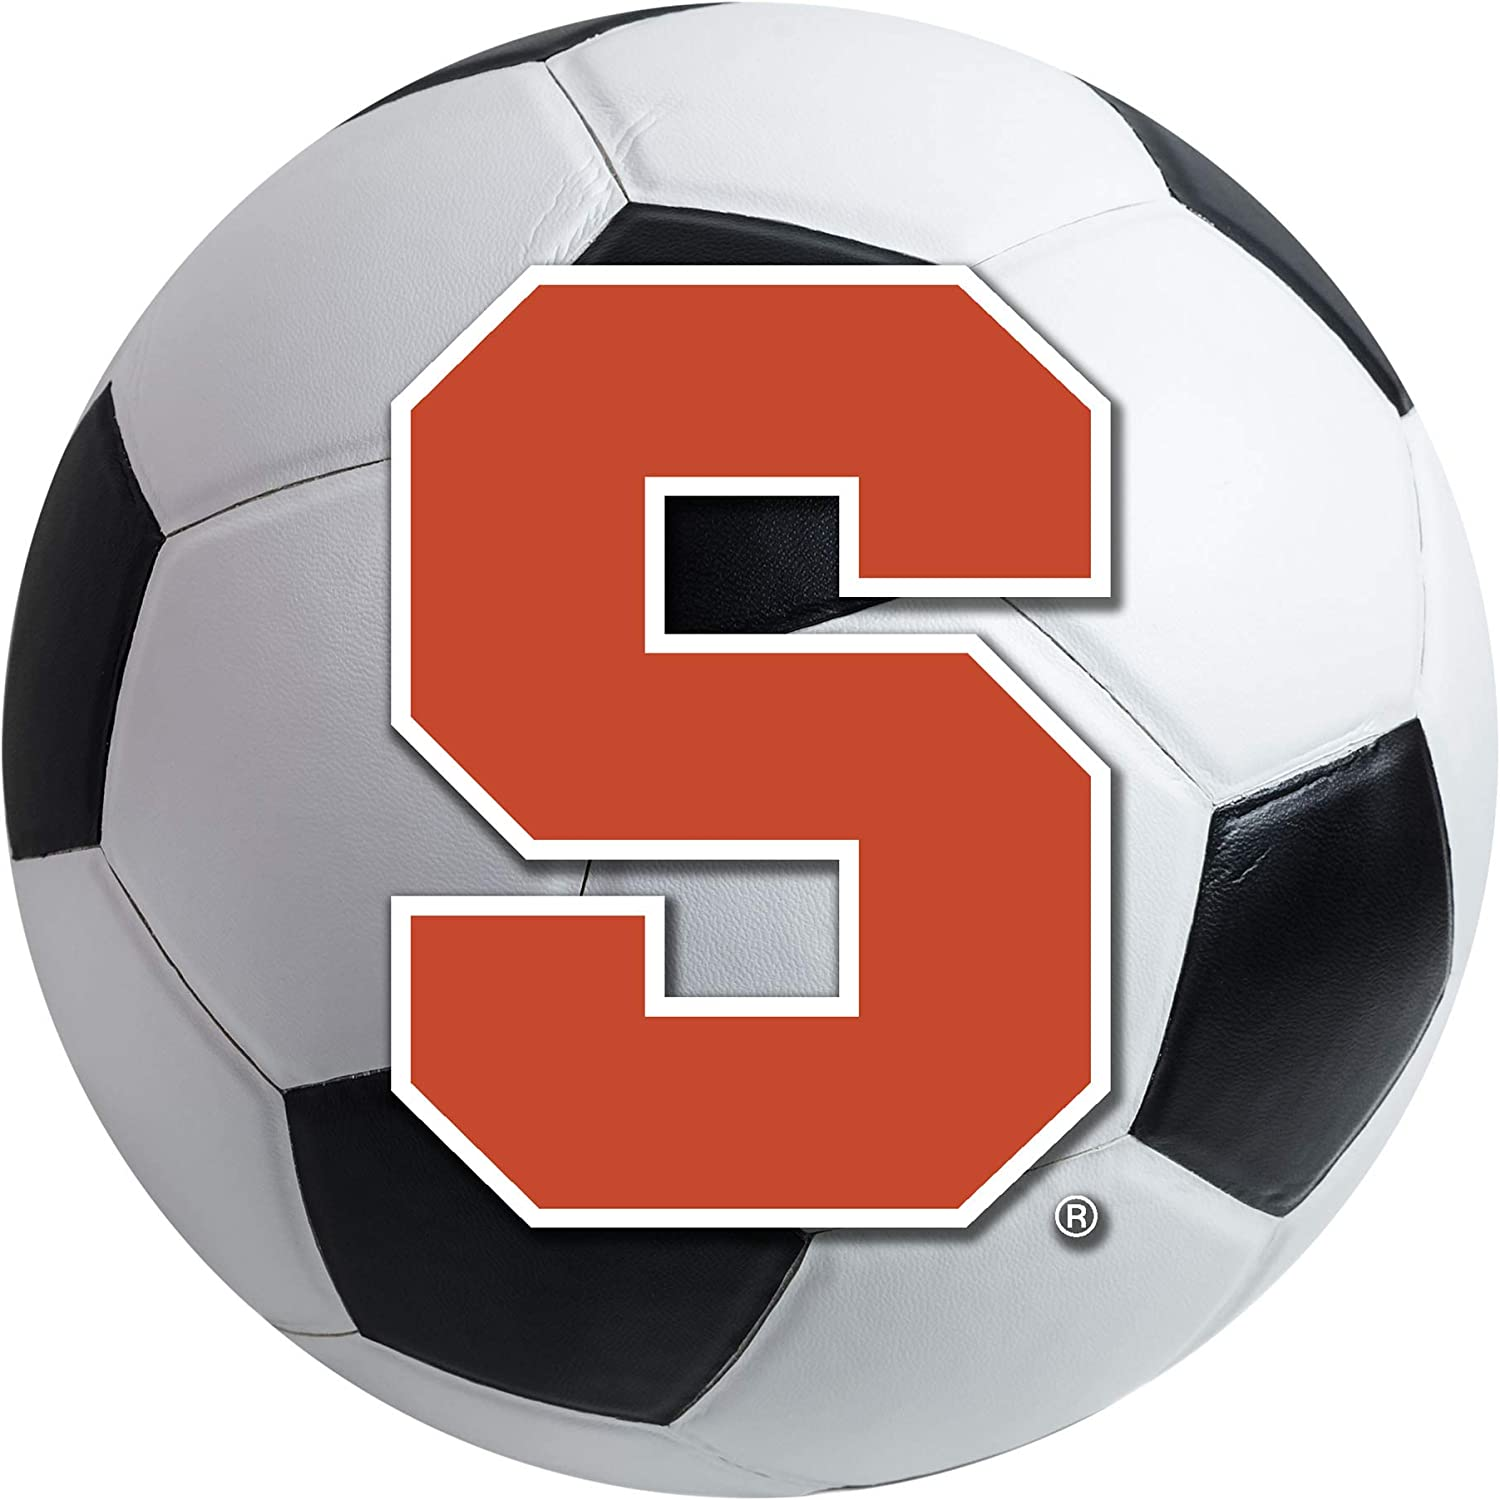 FANMATS NCAA Syracuse University Orange Nylon Face Soccer Ball Rug